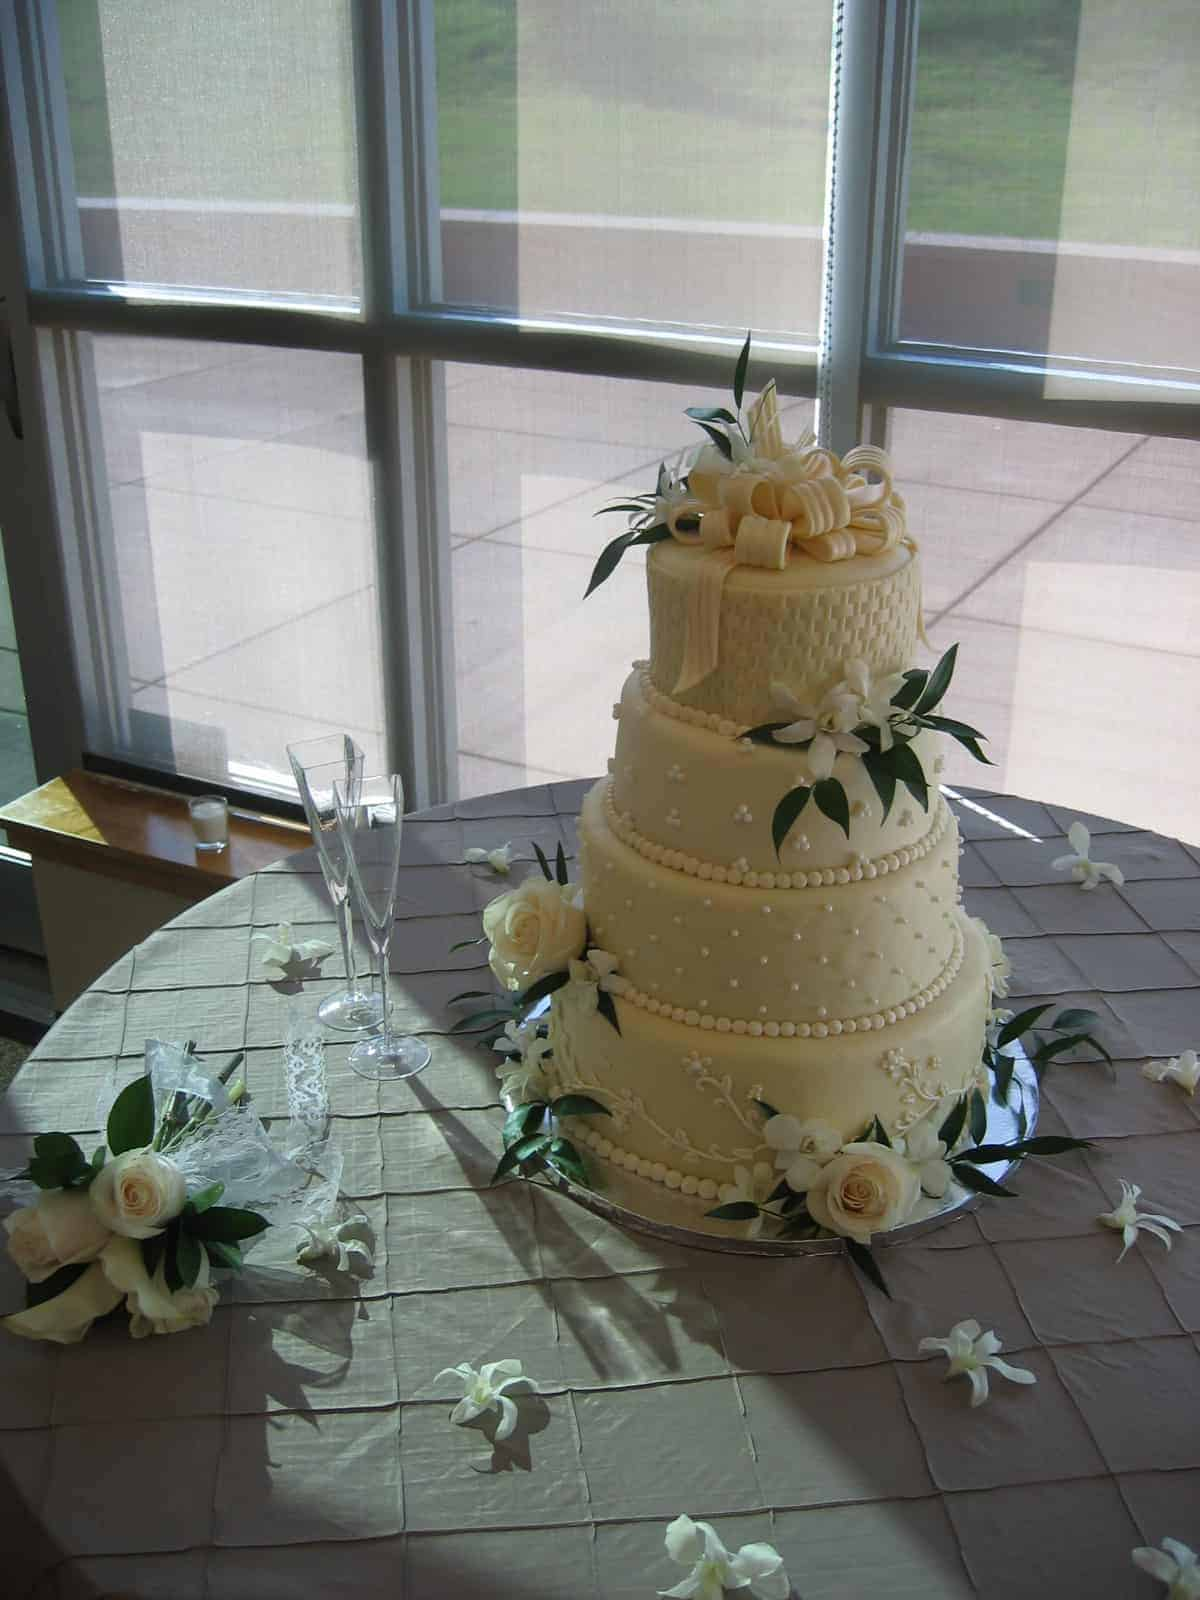 Fondant Basket Weave Wedding Cake with Bow on Top